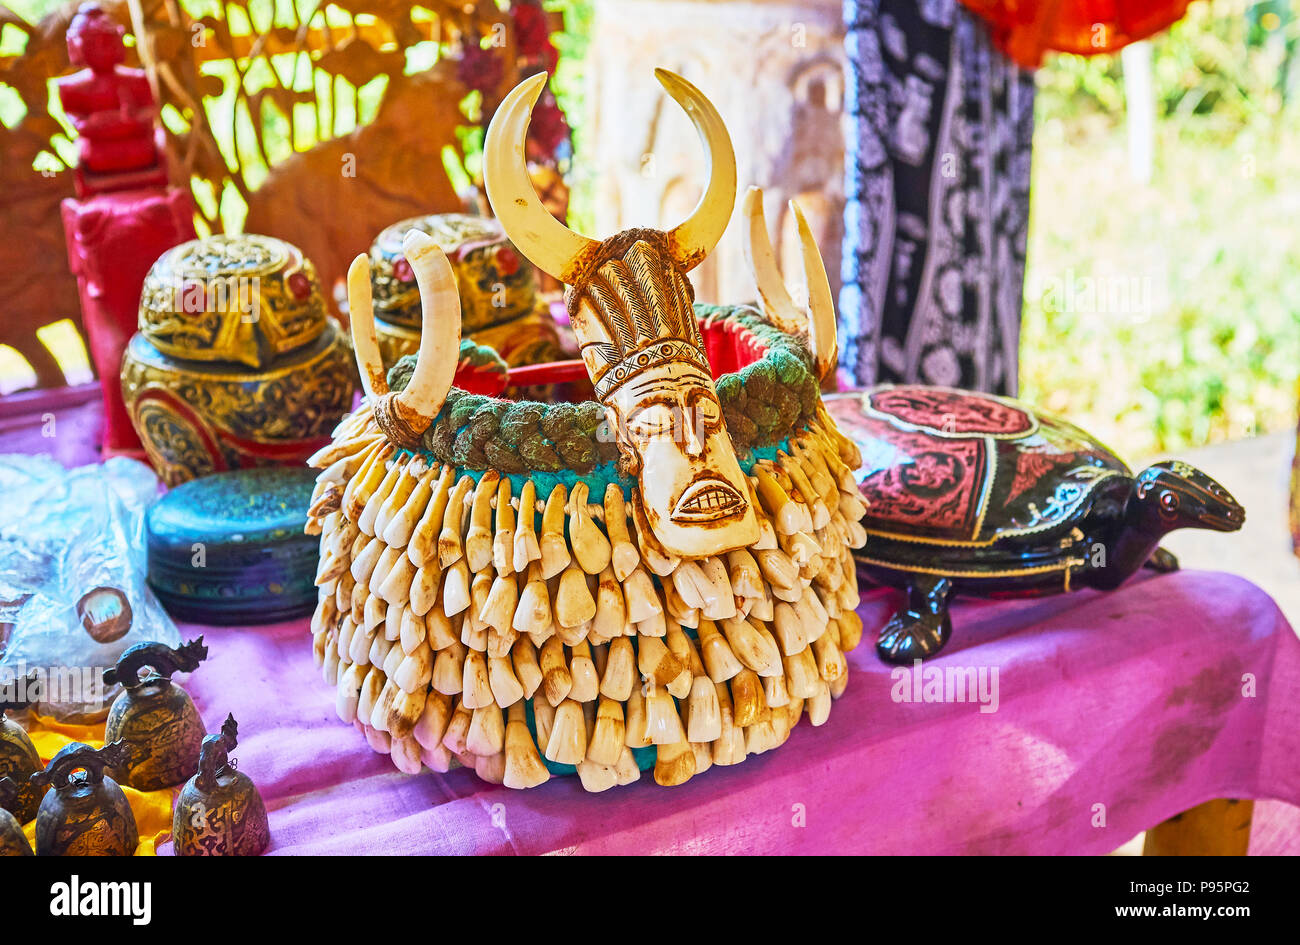 The tribal male headdress, decorated with animals' teeth is one of the most unusual gifts from Myanmar, Inn Thein (Indein) village on Inle Lake. - Stock Image